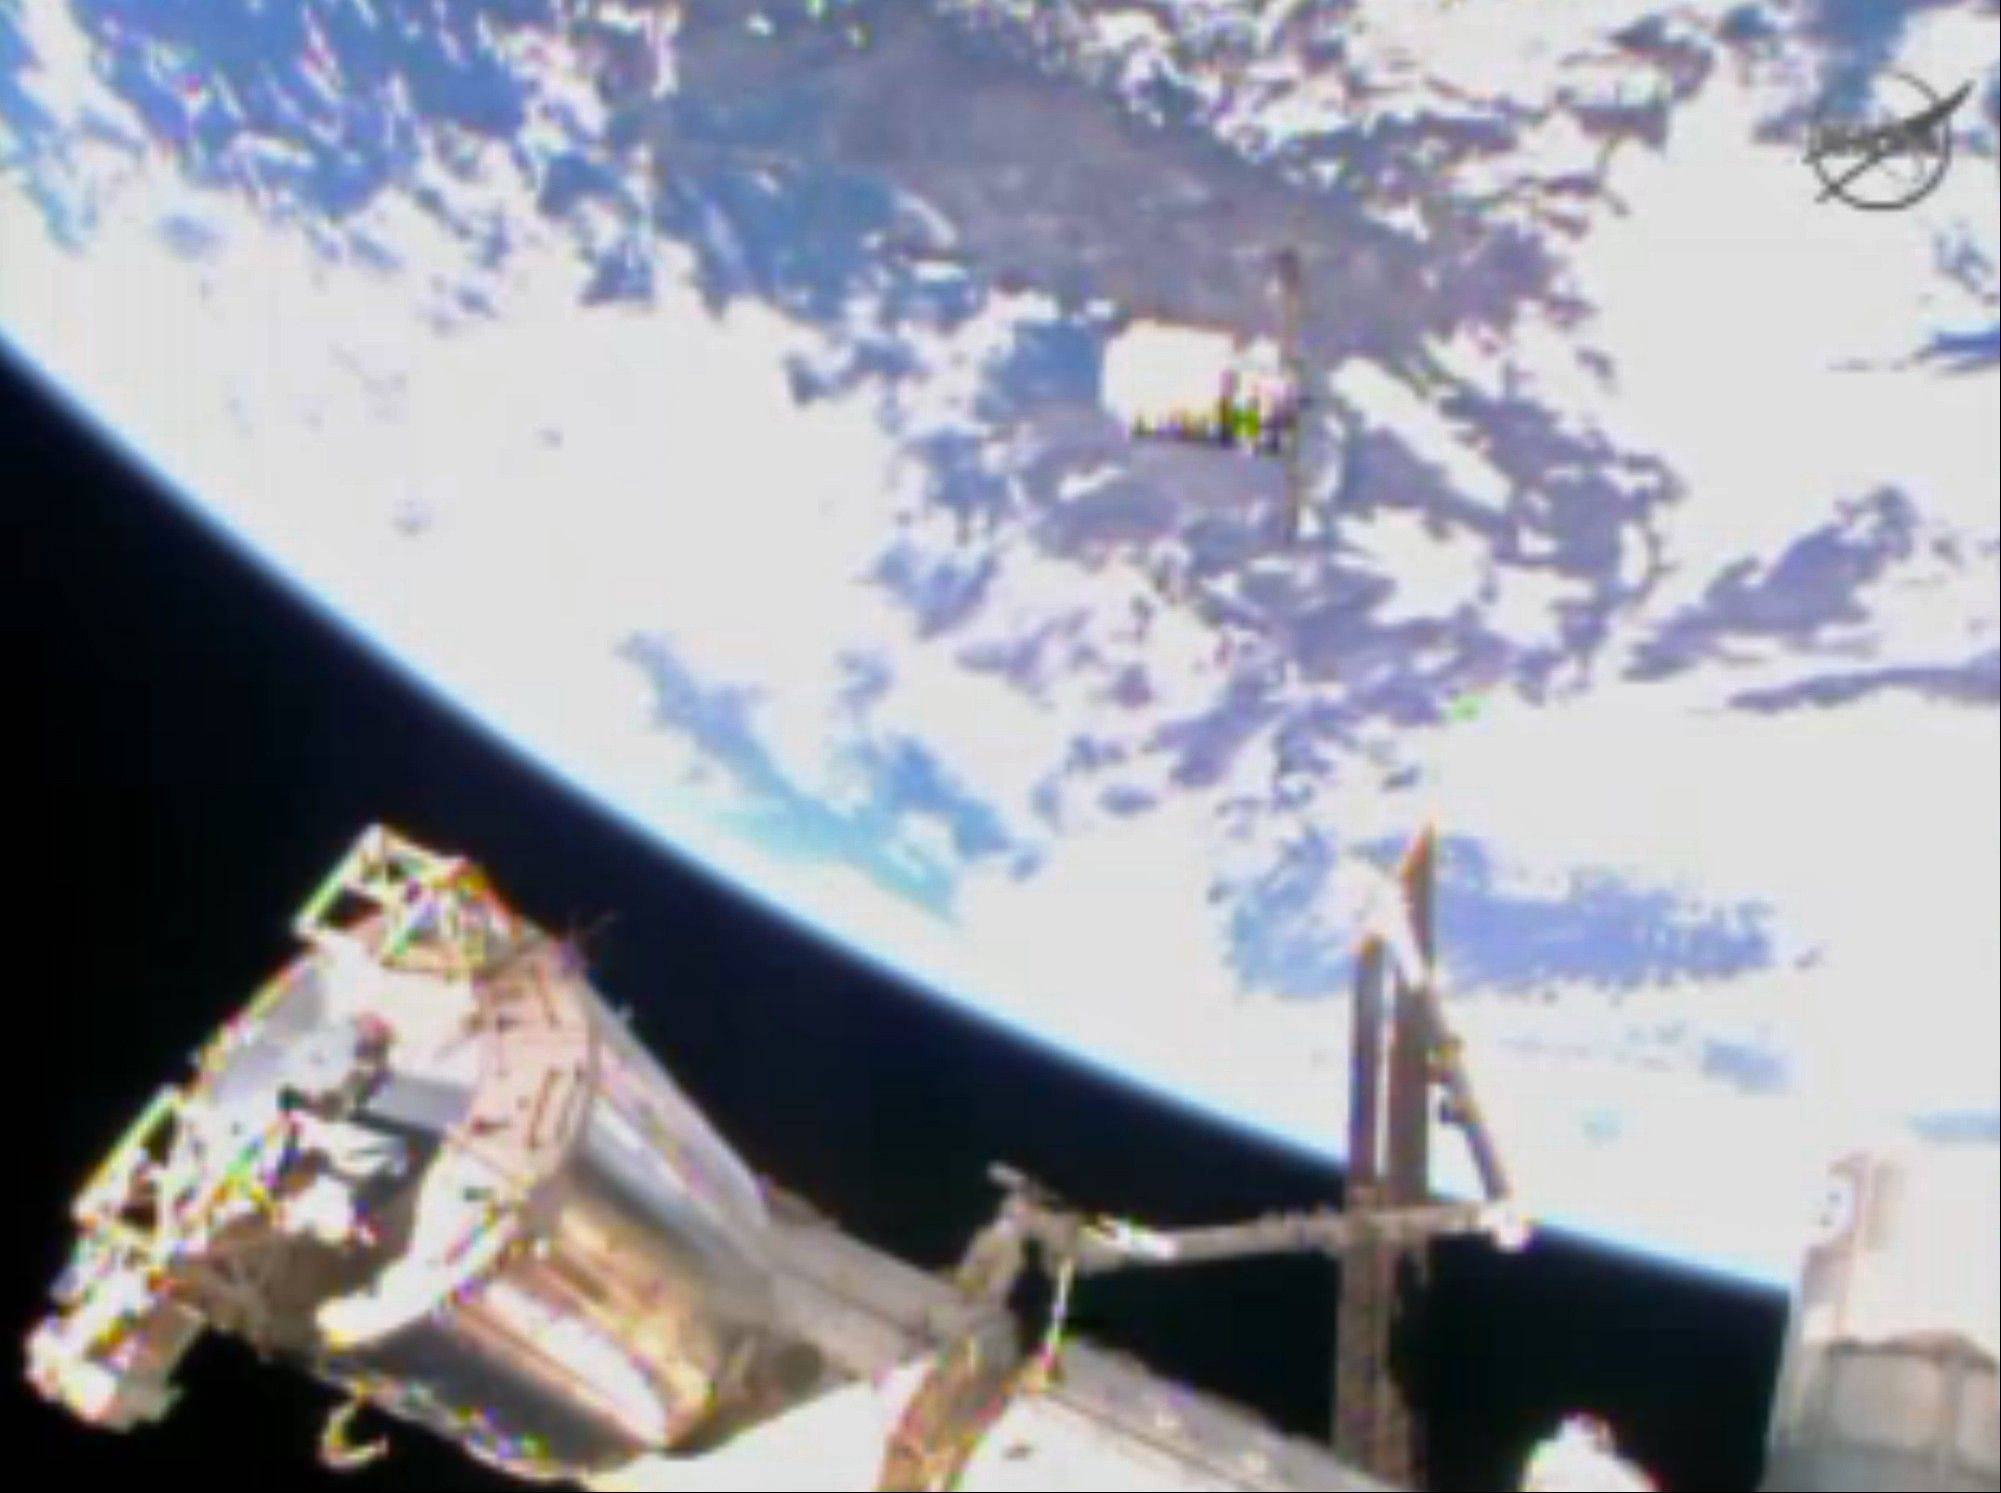 The Cygnus resupply spacecraft approaches the International Space Station early Sunday.